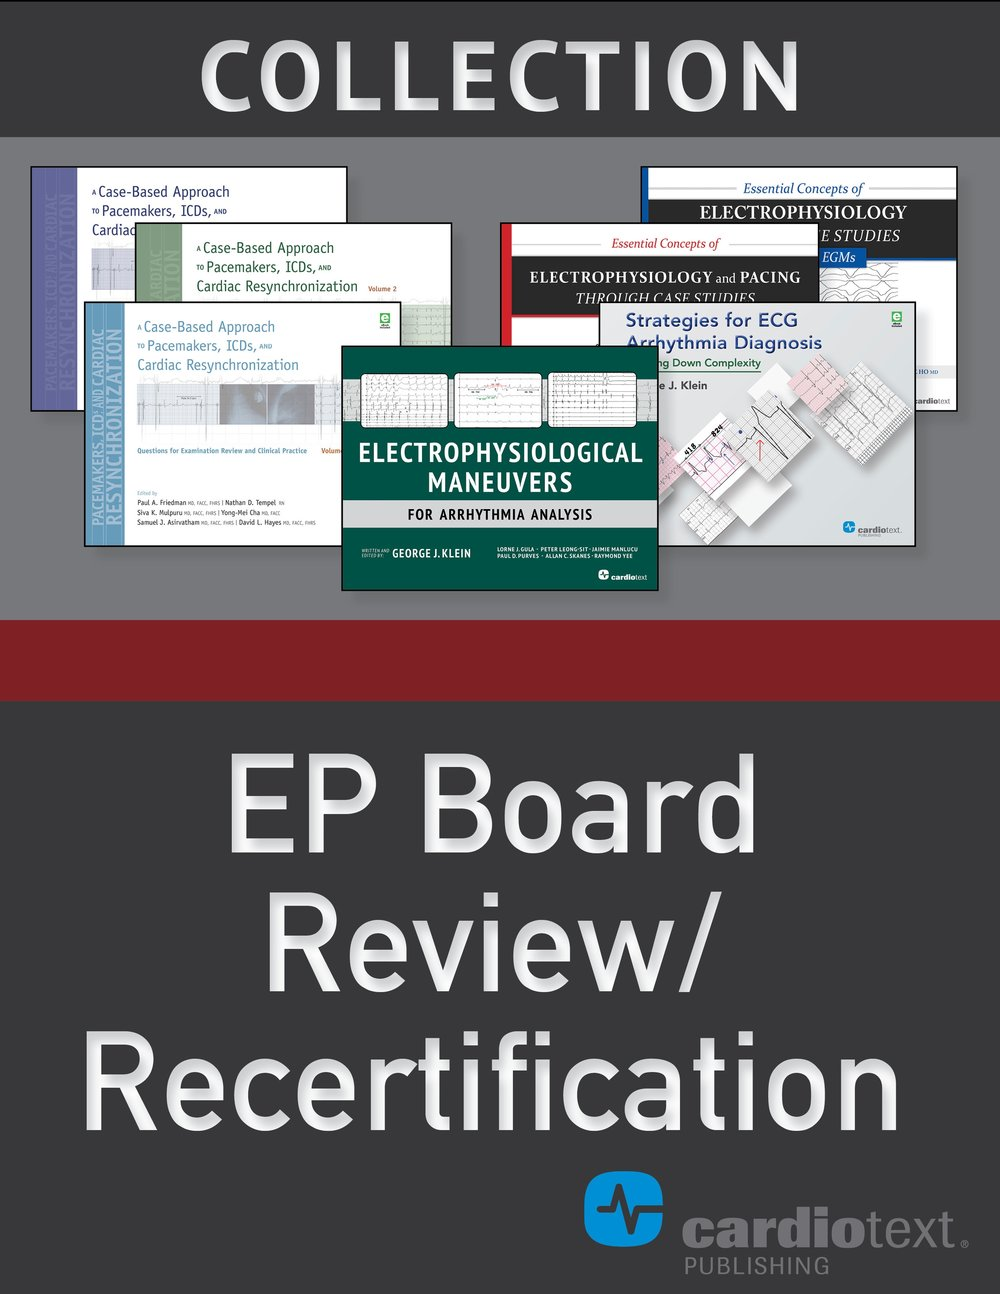 EP Board Review Collection